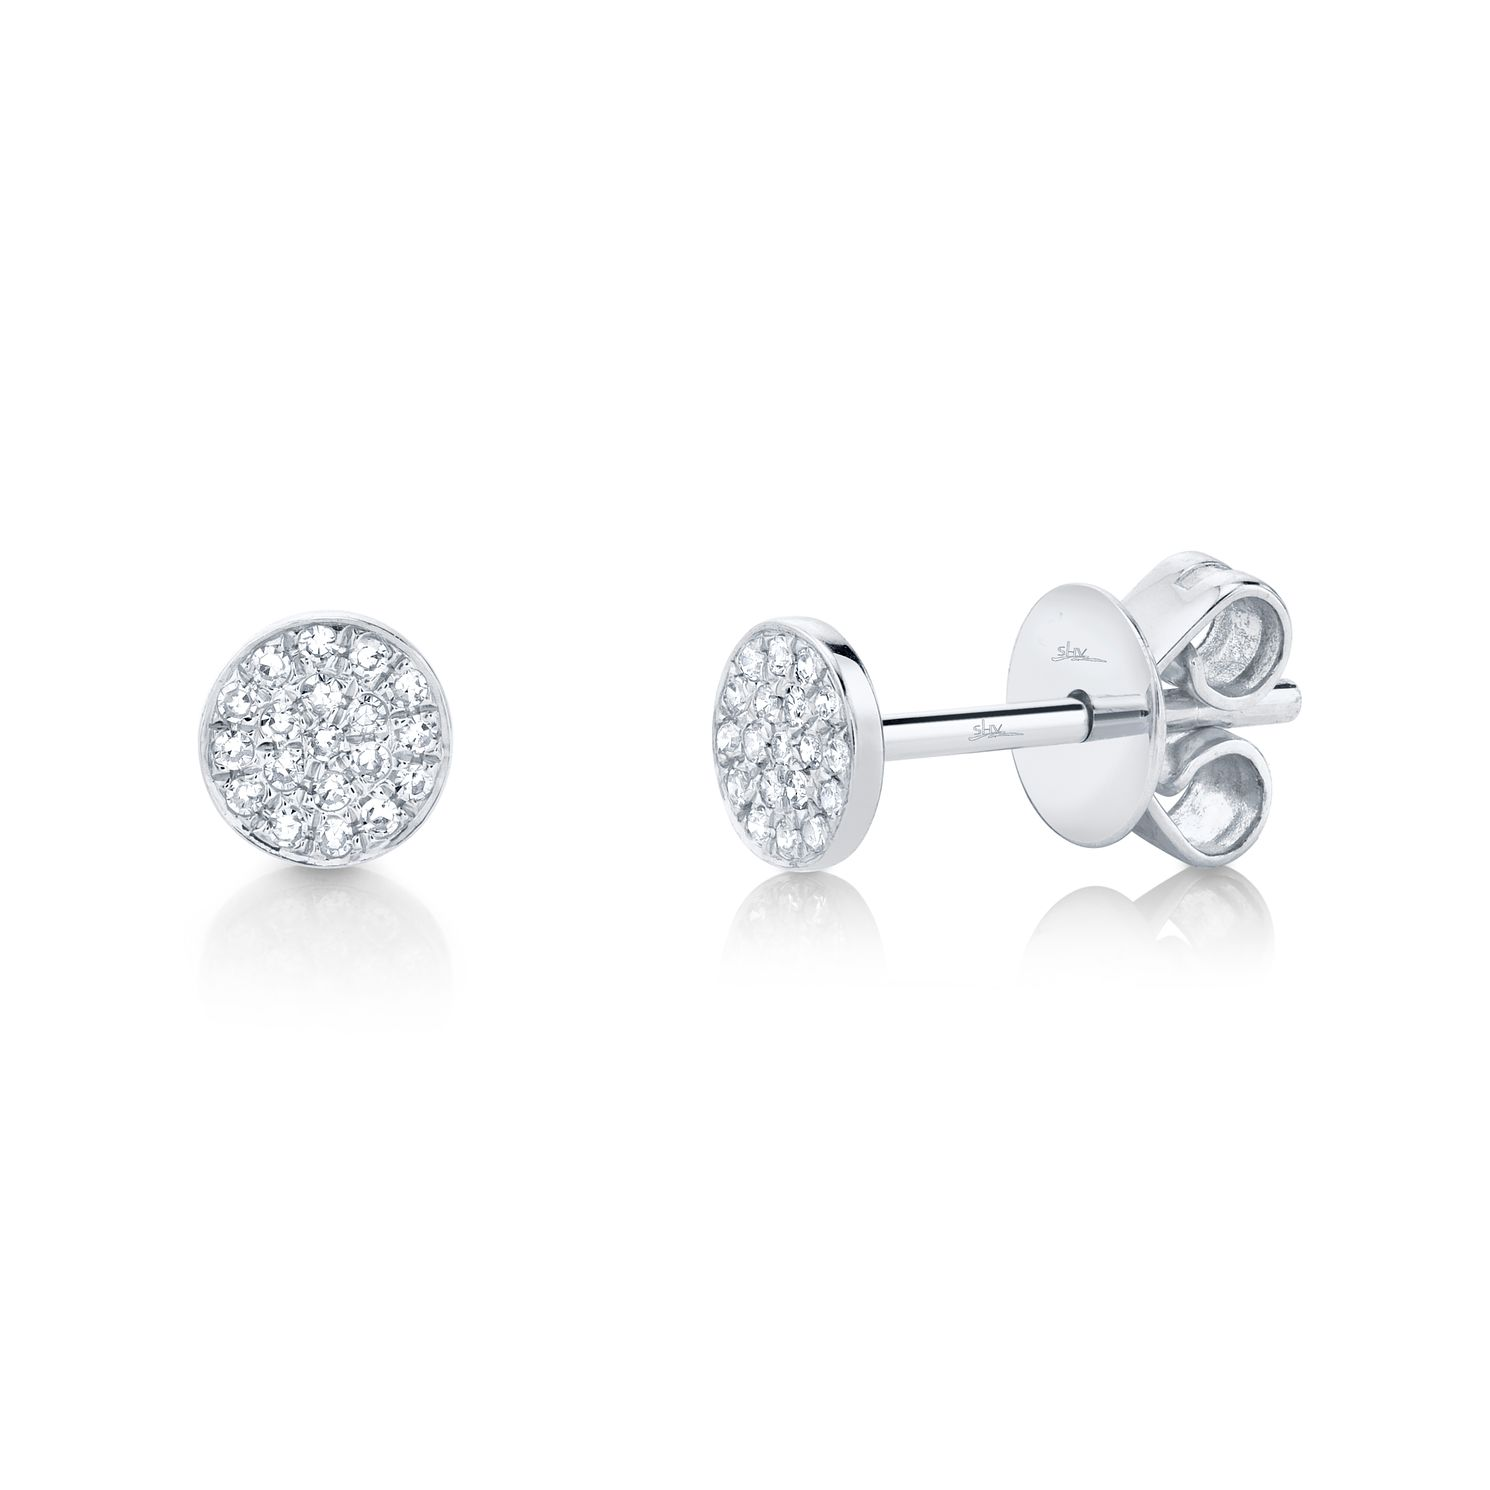 Shy Creation Kate 14ct White Gold Diamond Pave Stud Earrings - Product number 1177729